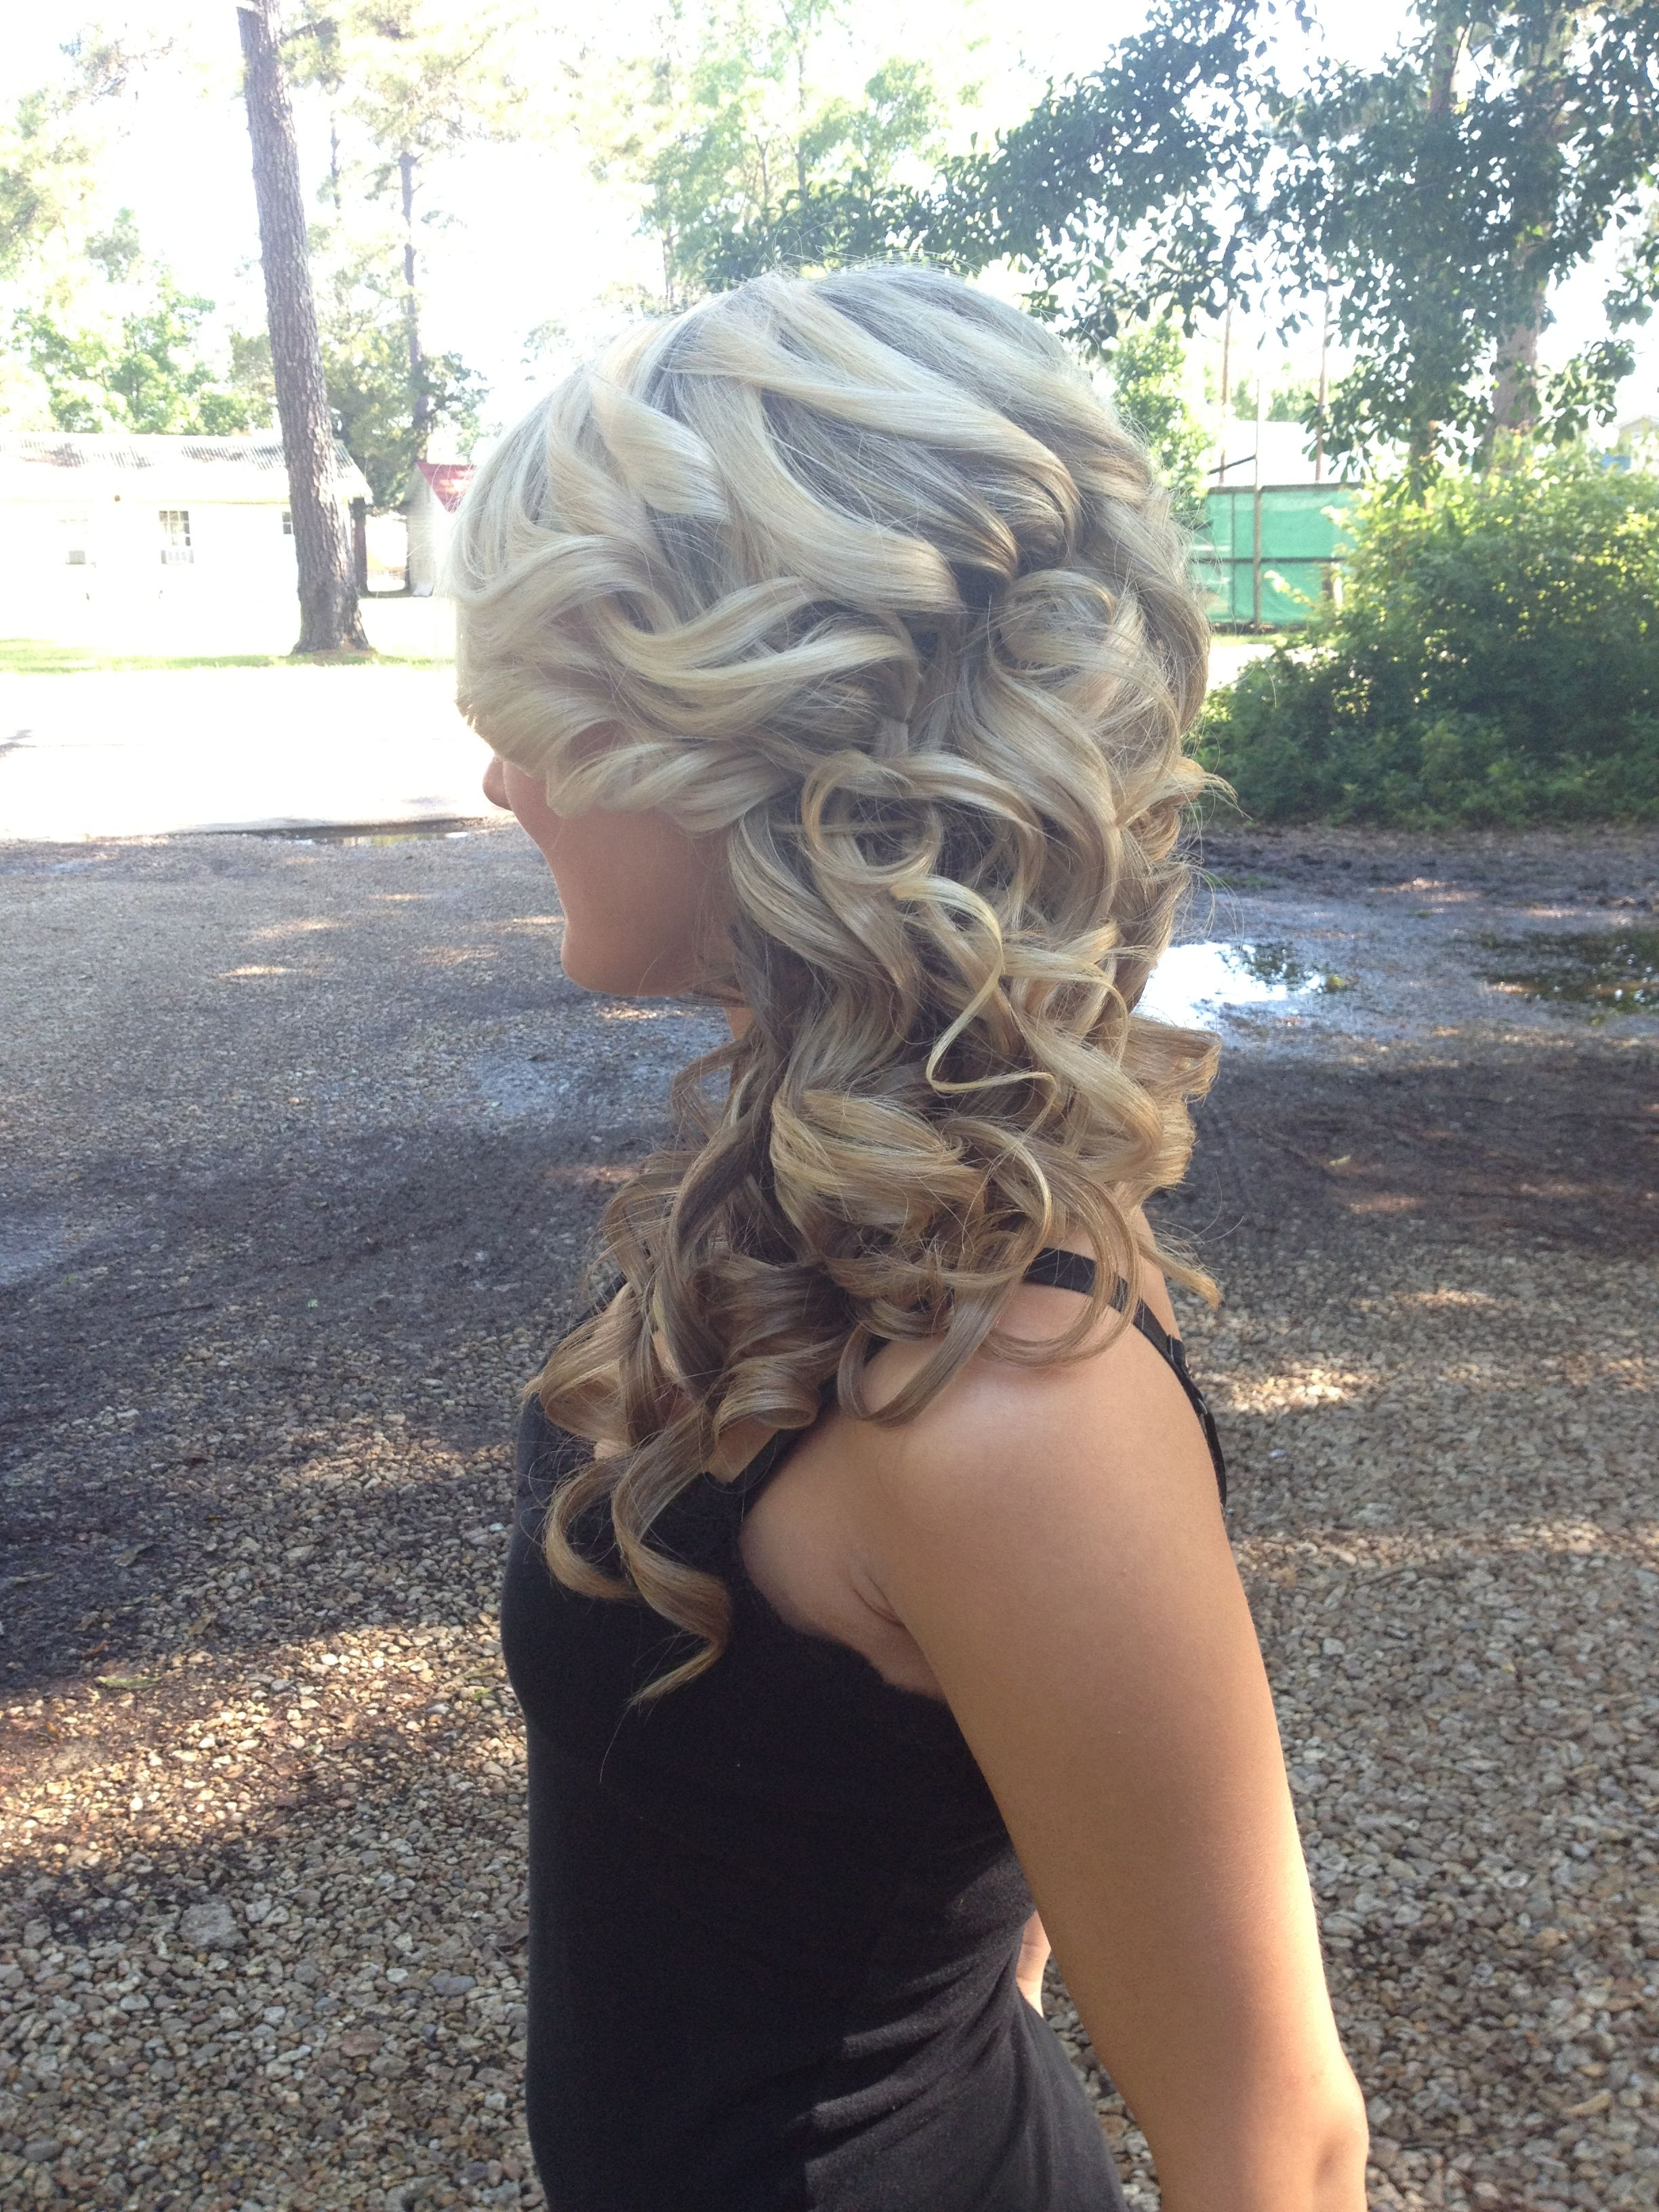 Prom hair updo curly hair blonde hair cute hairstyles hair